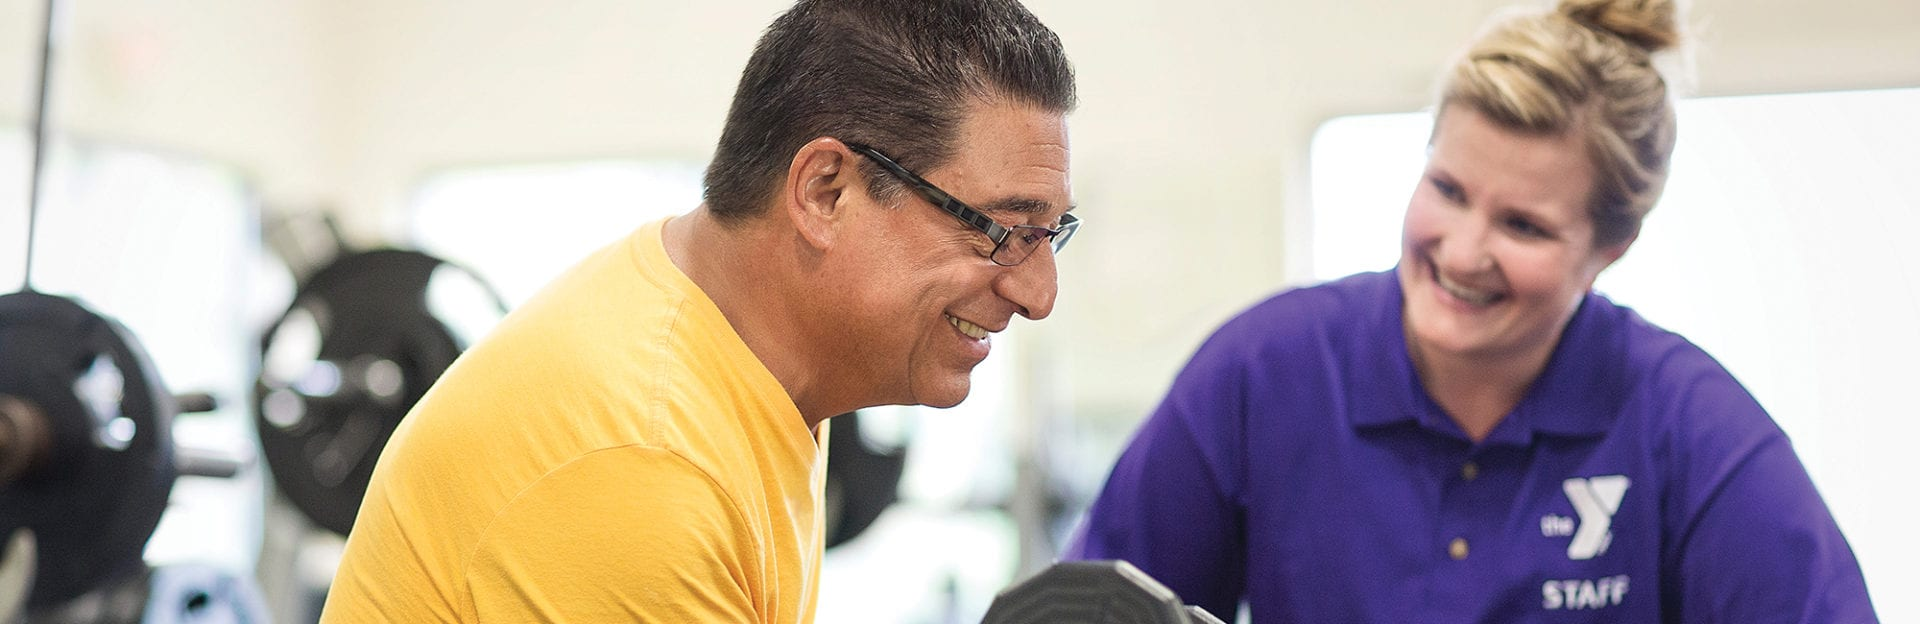 Work At The Y | The Gateway Family YMCA